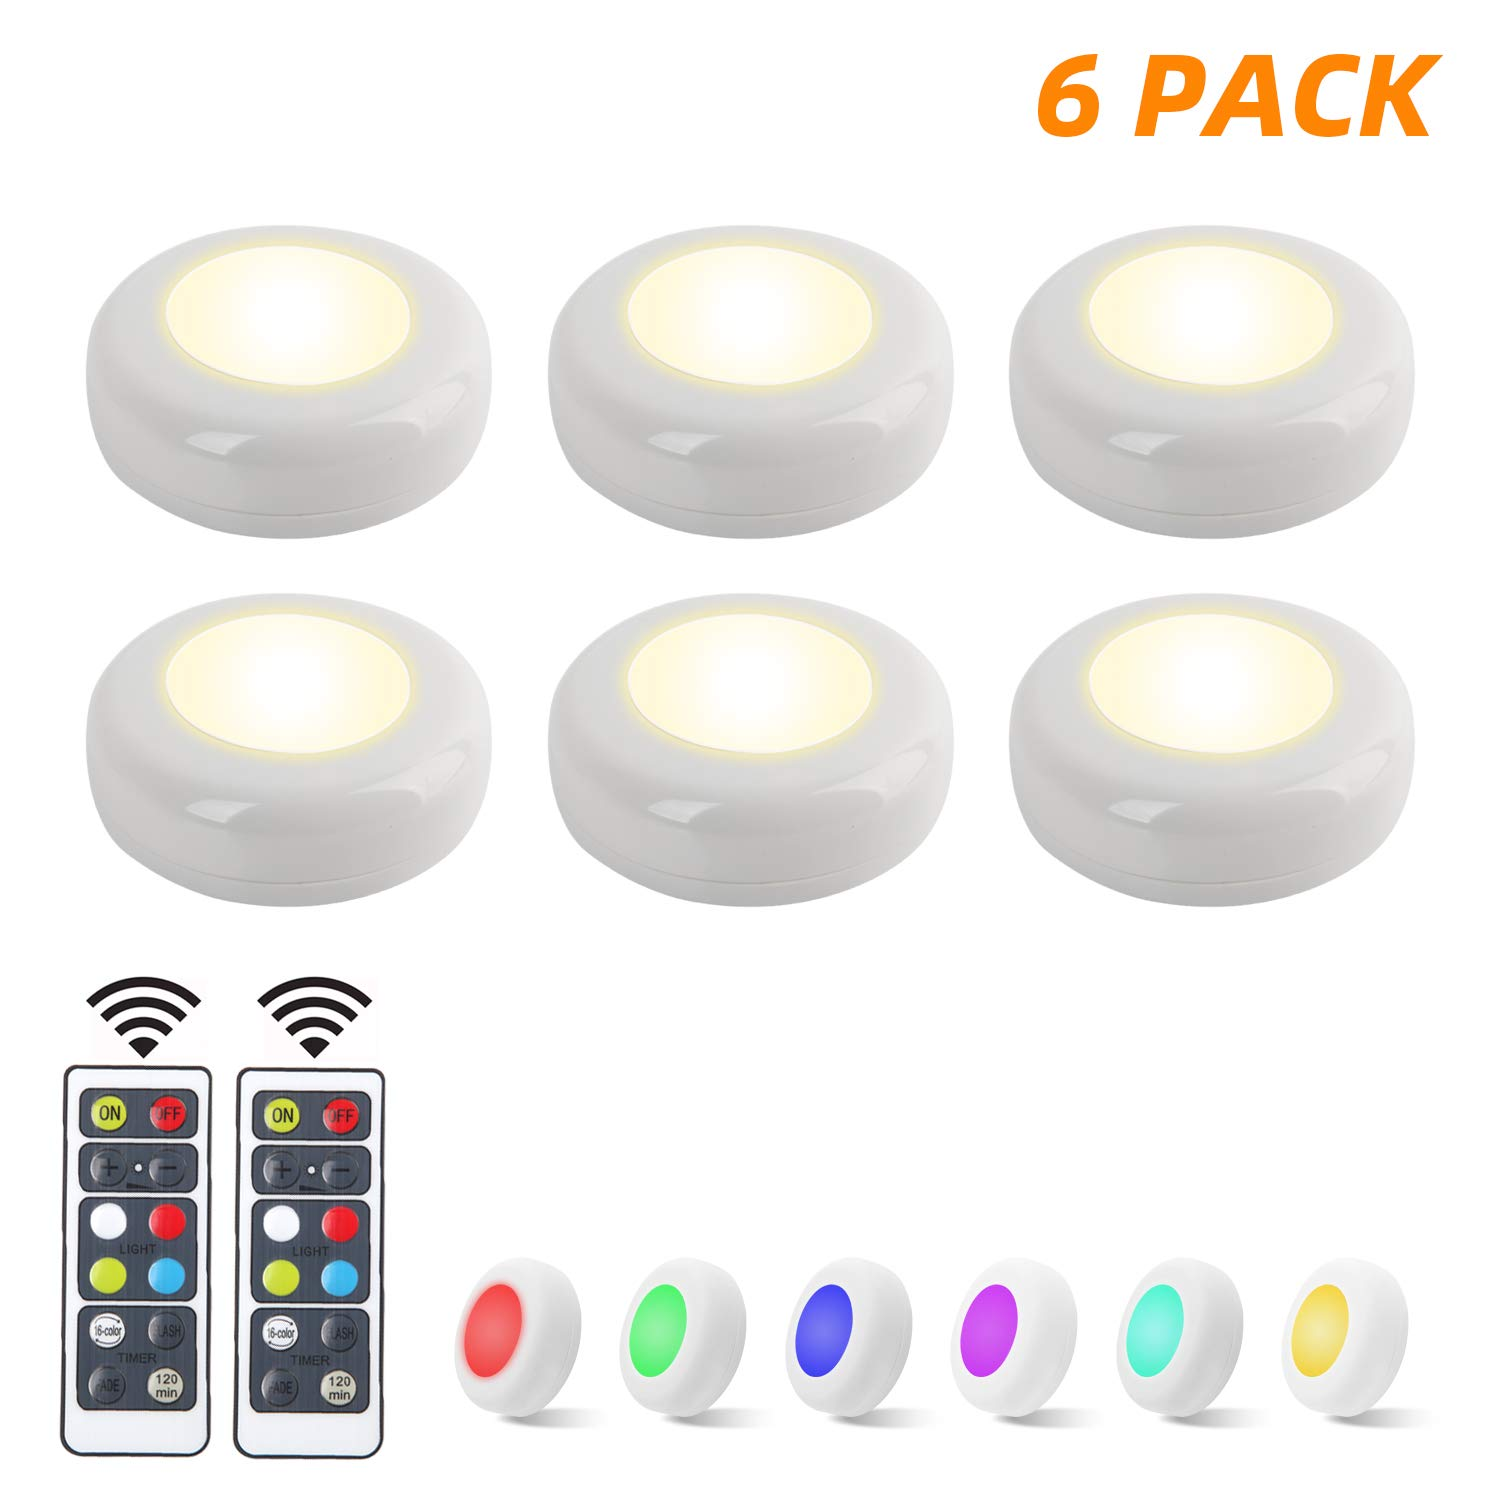 YLCVBUD 6 Pack RGB Under Cabinet Lighting LED Closet Lights Wireless LED Puck Lights 16 Colors 3 Modes with Remote Control Timer Function Battery Powered Dimmable(only White) by YLCVBUD